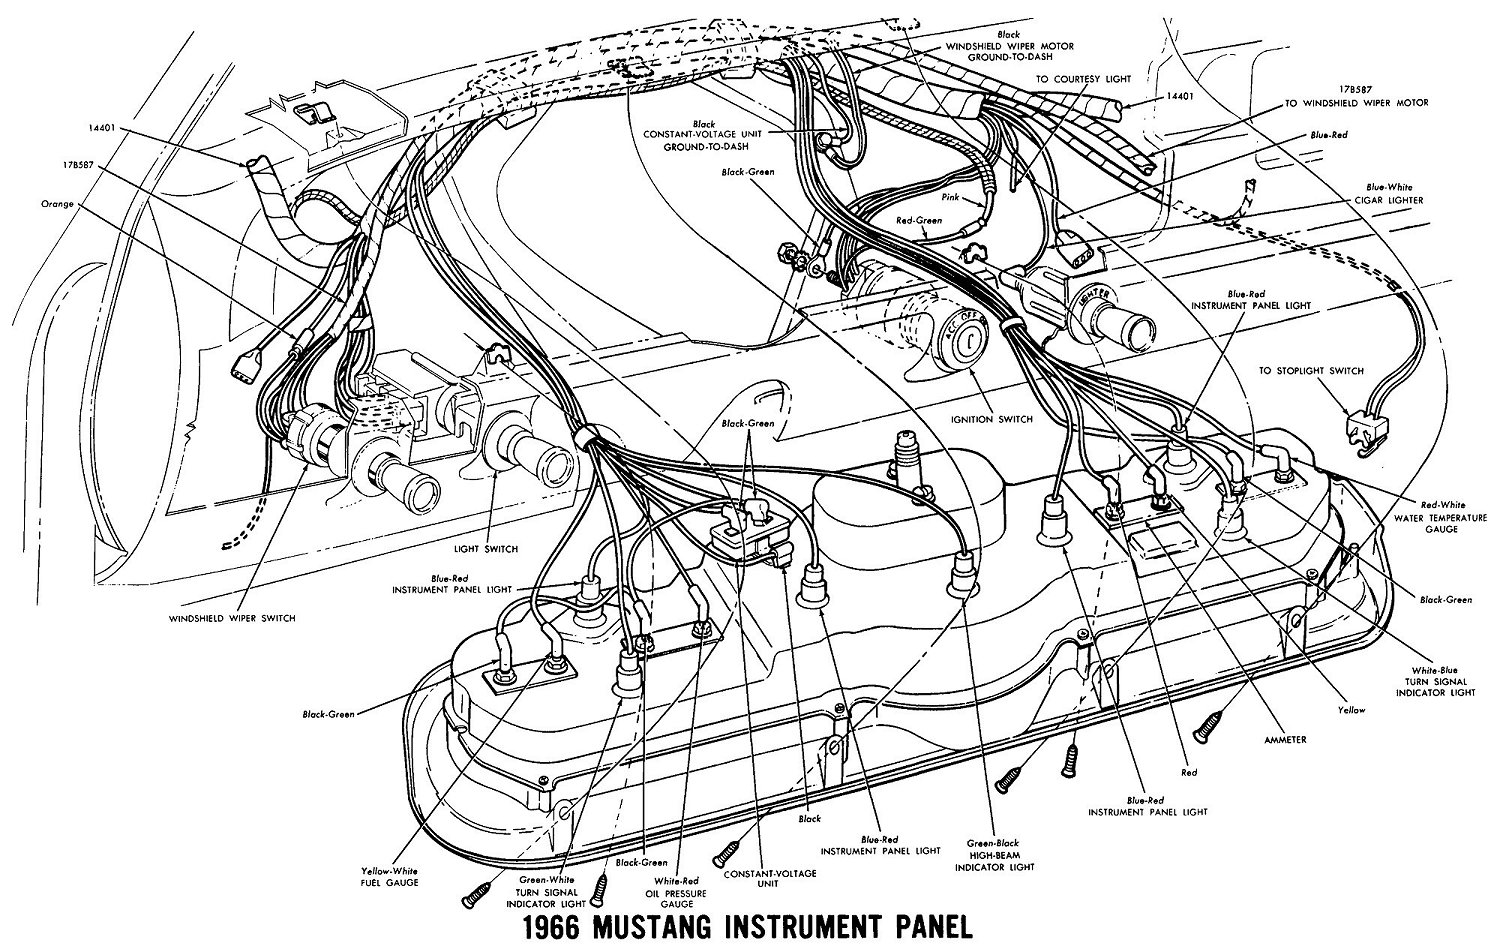 66instr 1966 mustang wiring diagrams average joe restoration 68 mustang headlight wiring diagram at readyjetset.co